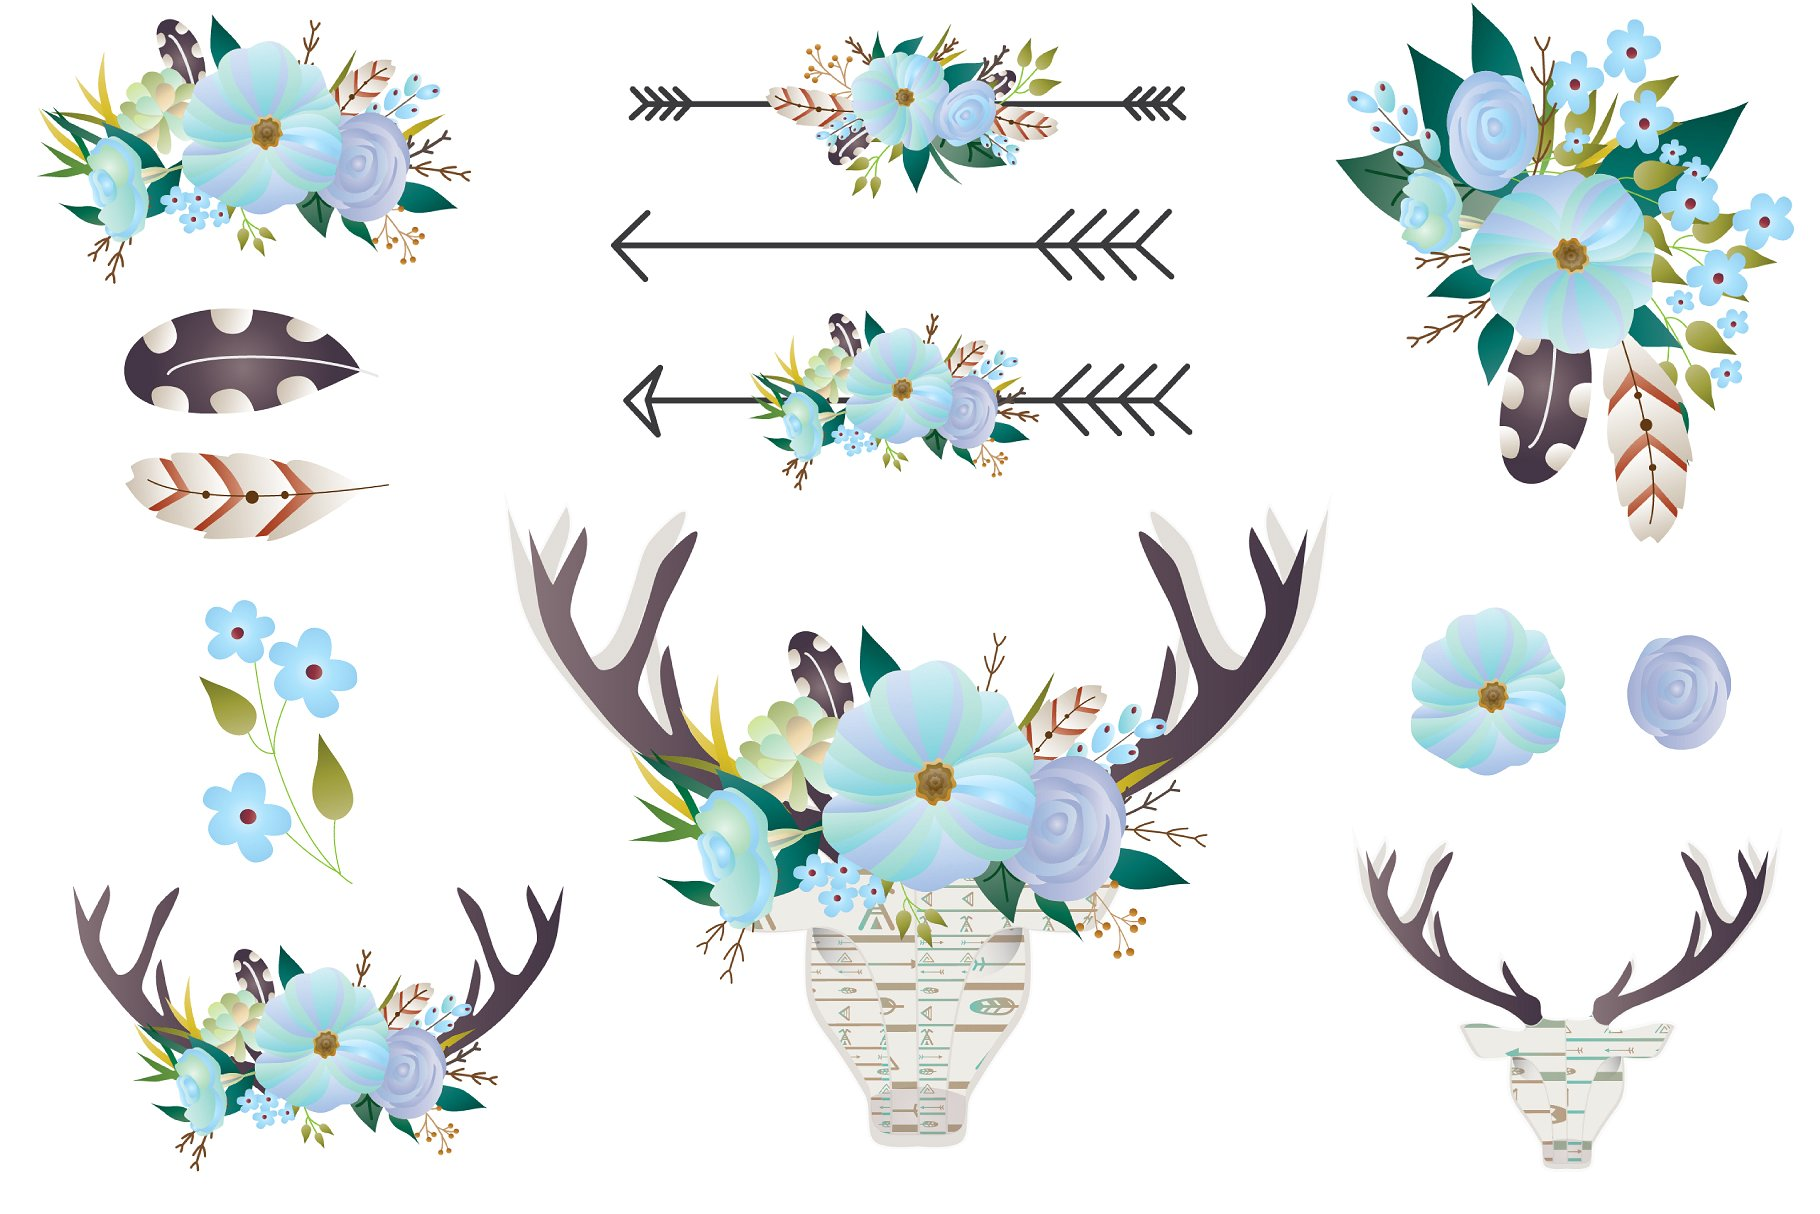 Ngcb clipart website picture freeuse library Boho clipart - 131 transparent clip arts, images and ... picture freeuse library